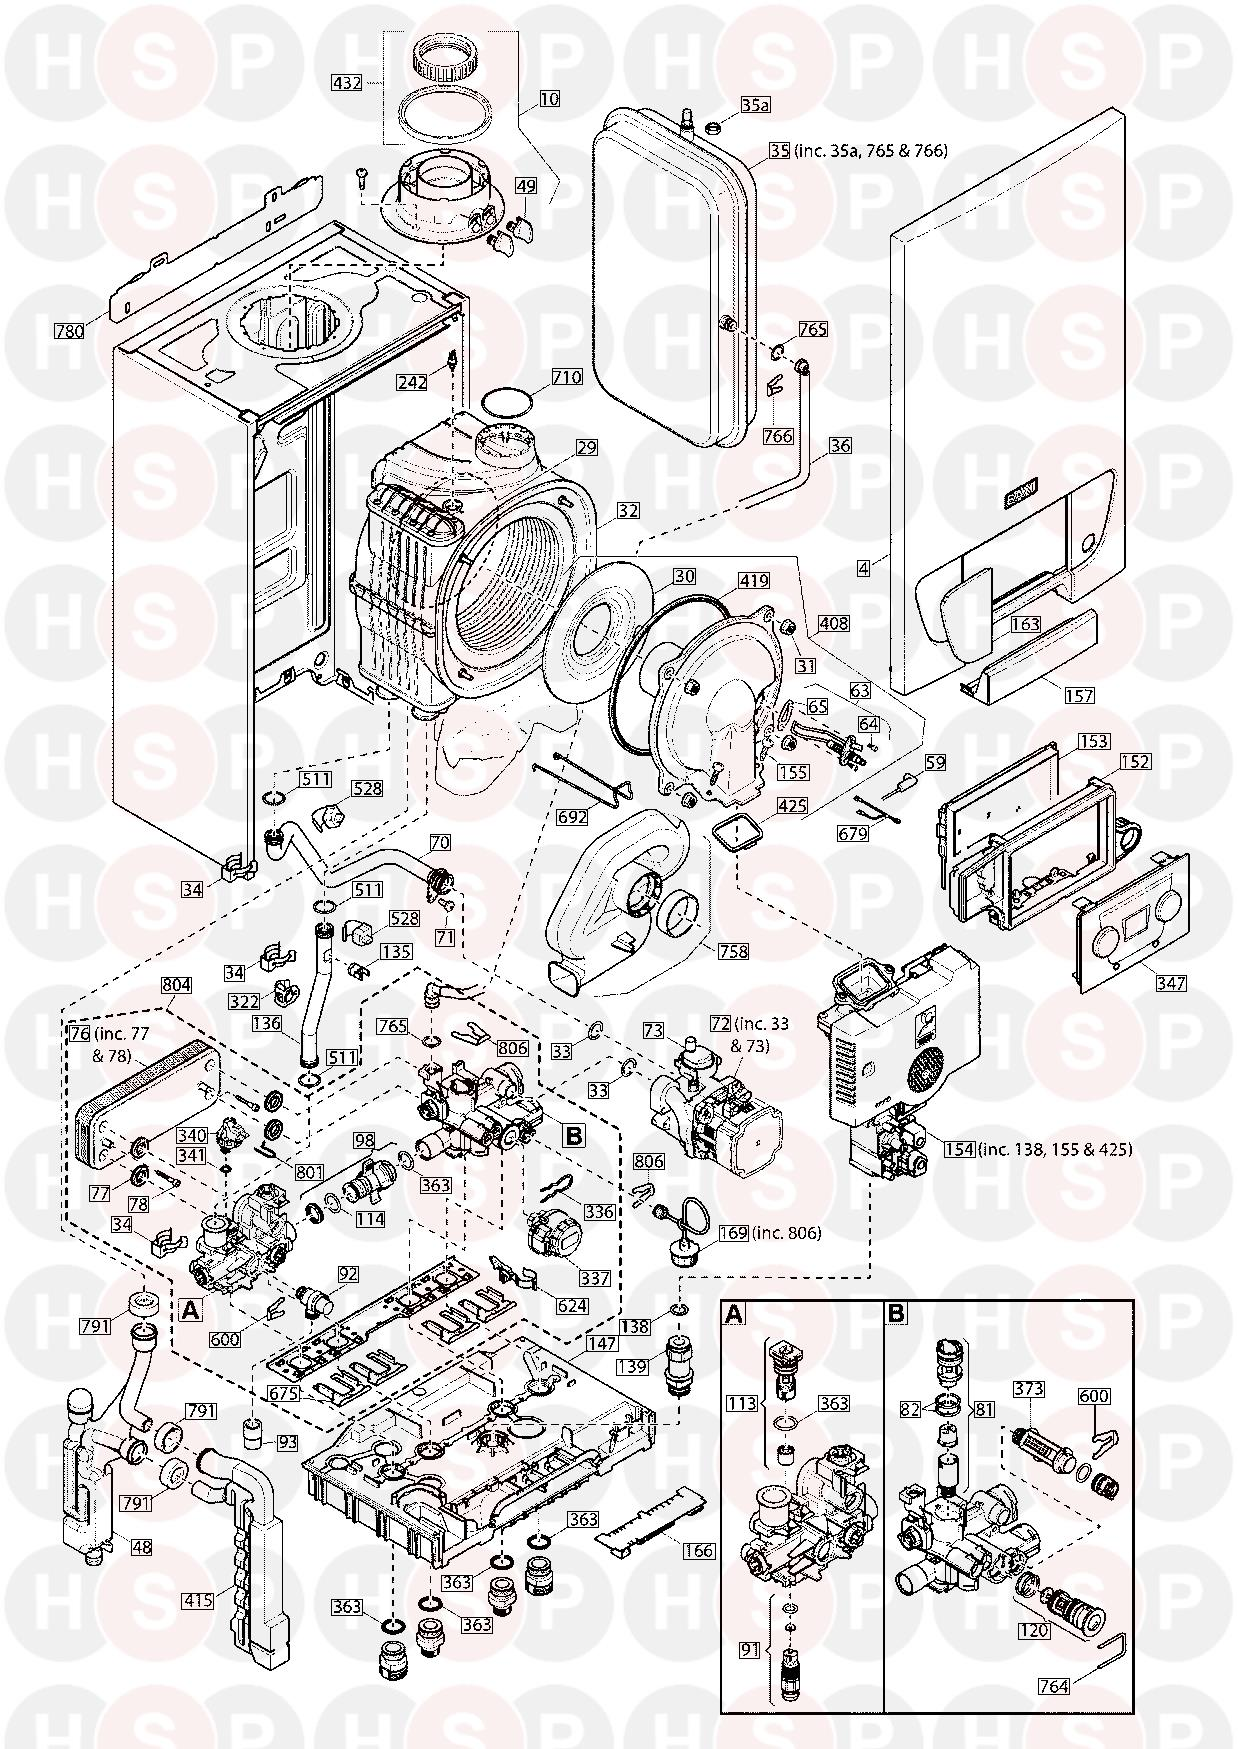 Baxi 424 Combi  Exploded View Diagram